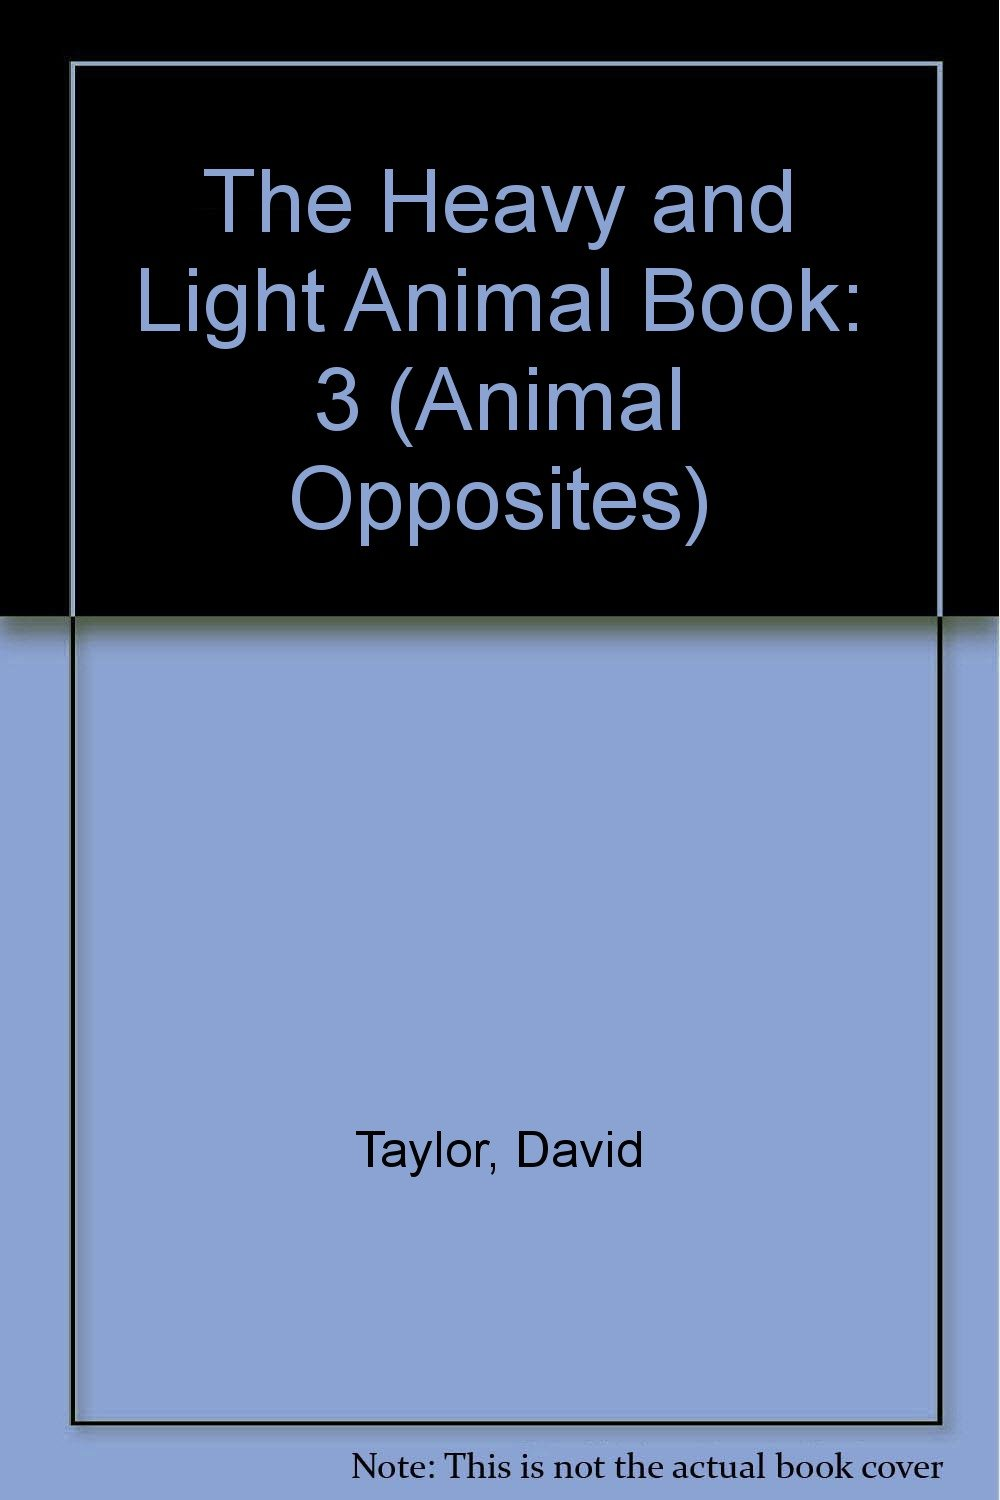 The Heavy and Light Animal Book (Animal Opposites)